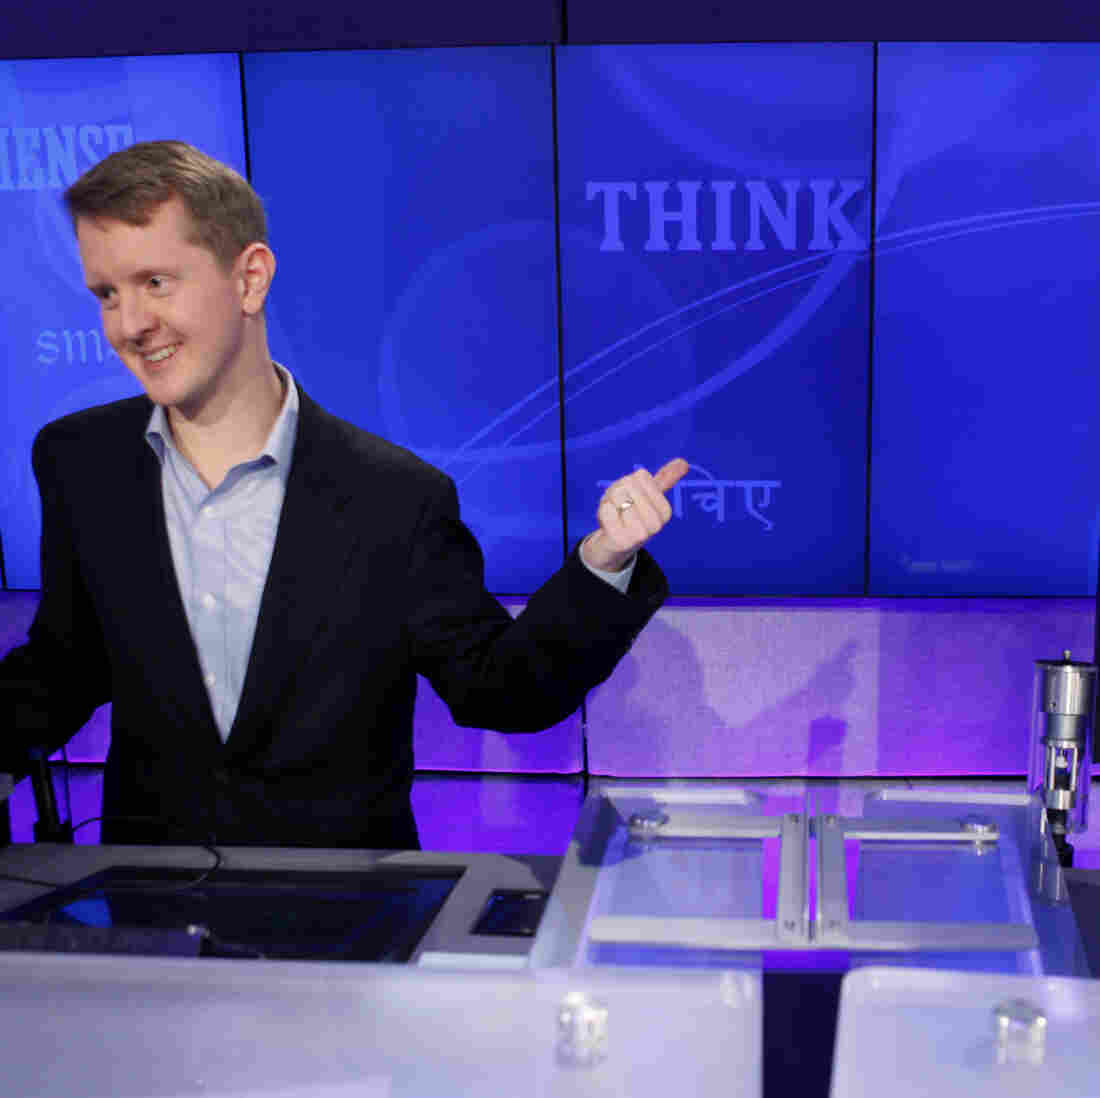 Watson, IBM's 'Jeopardy!' Champ, Gets Its Own Business Division